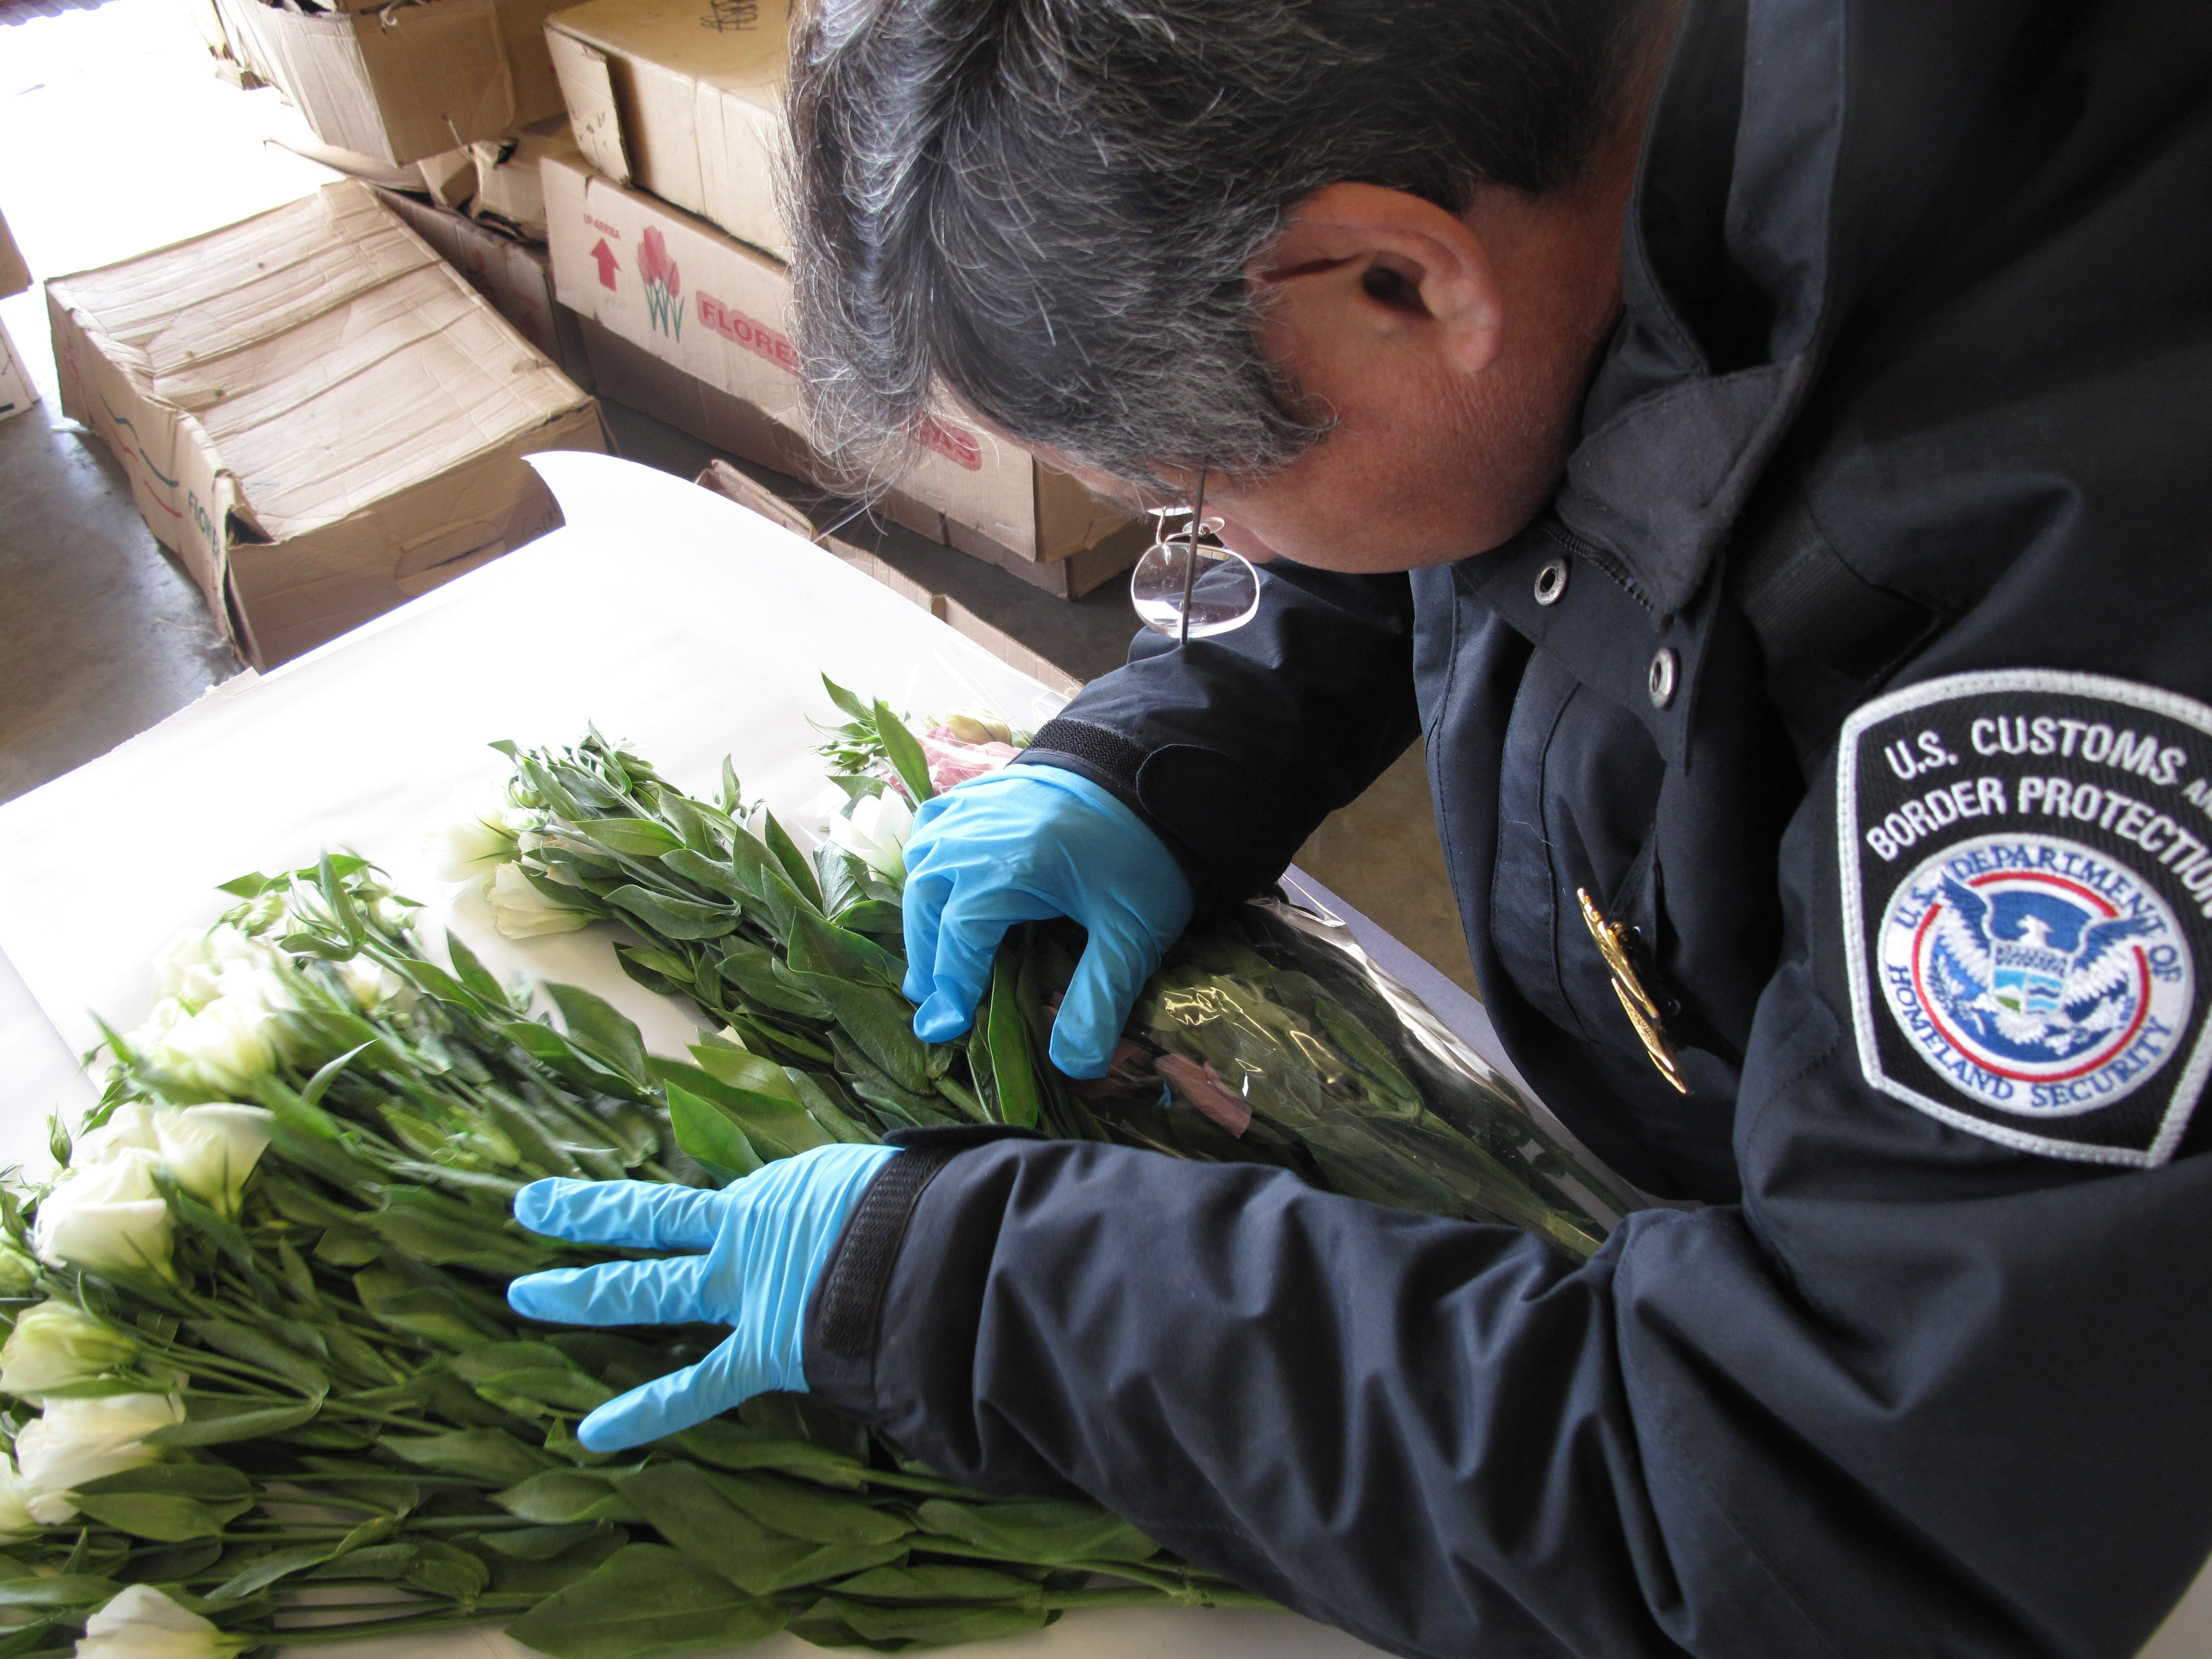 customs and border protection agriculture specialist